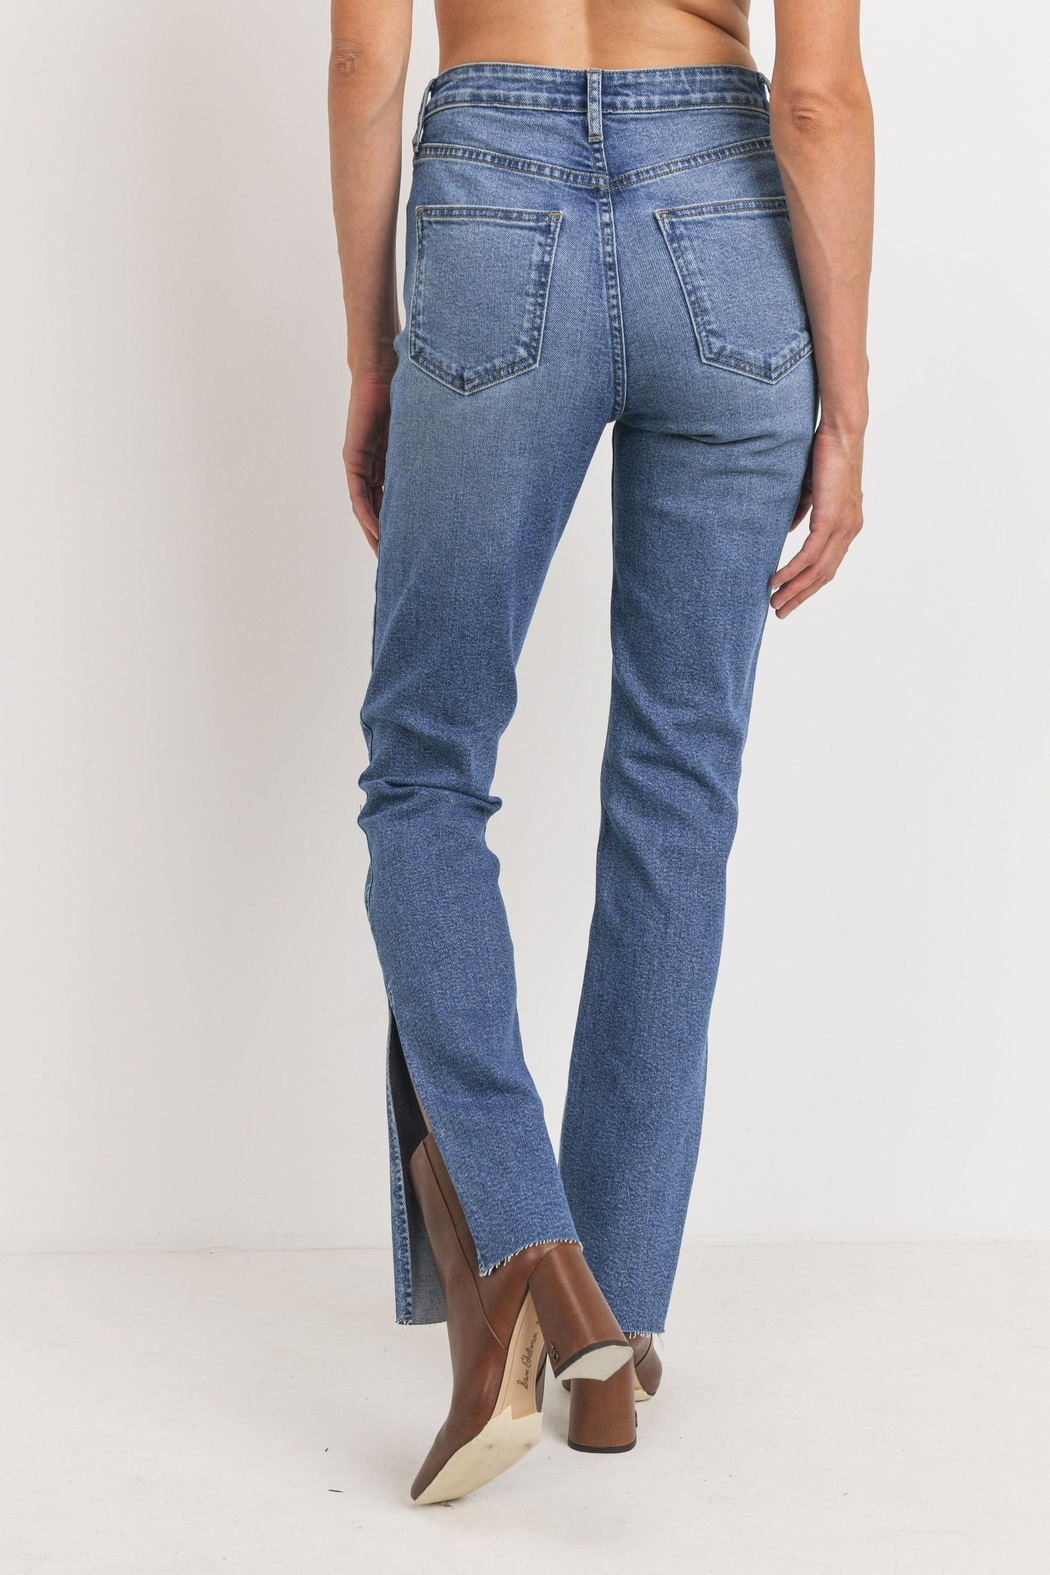 Just Panmaco Inc. Frayed Side Slit Jeans - Side Cropped Image